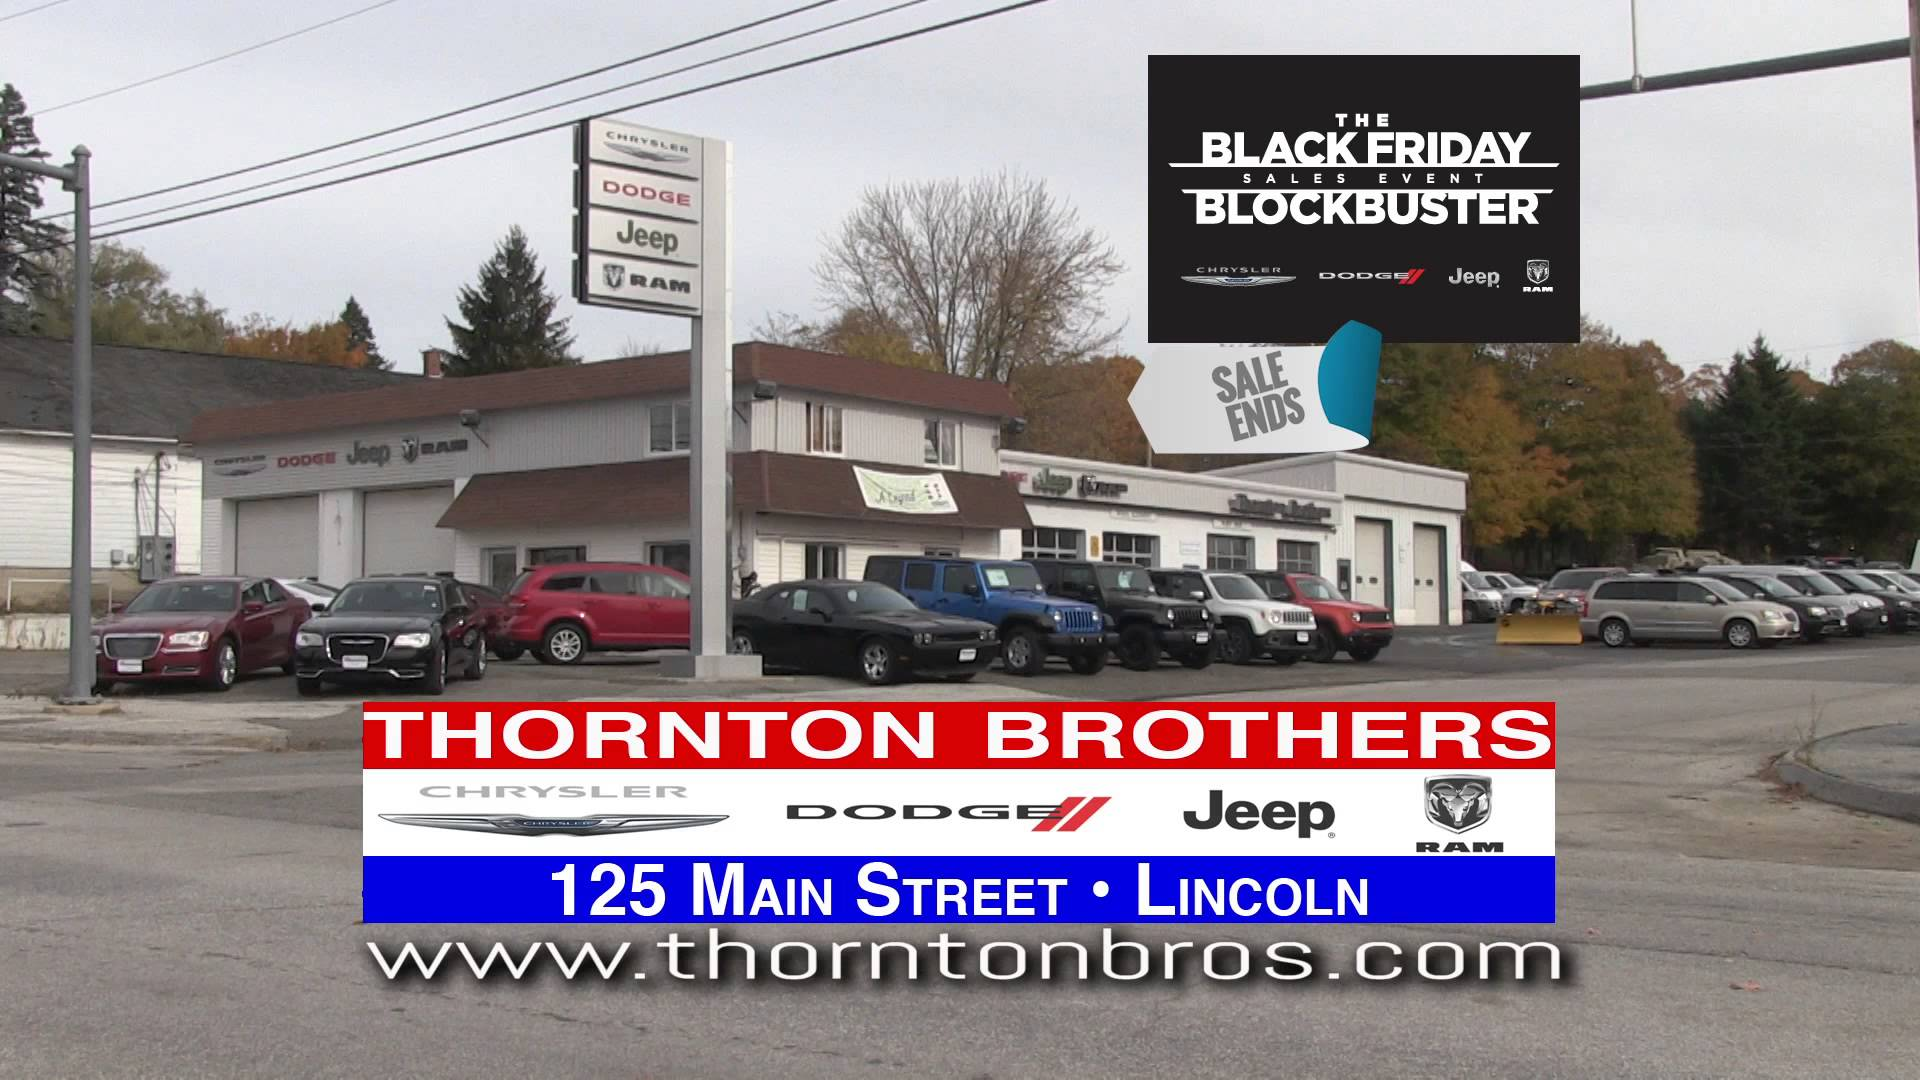 THORNTON BROTHERS_BLACK FRIDAY 1115_RMVP262_HD CREDIT